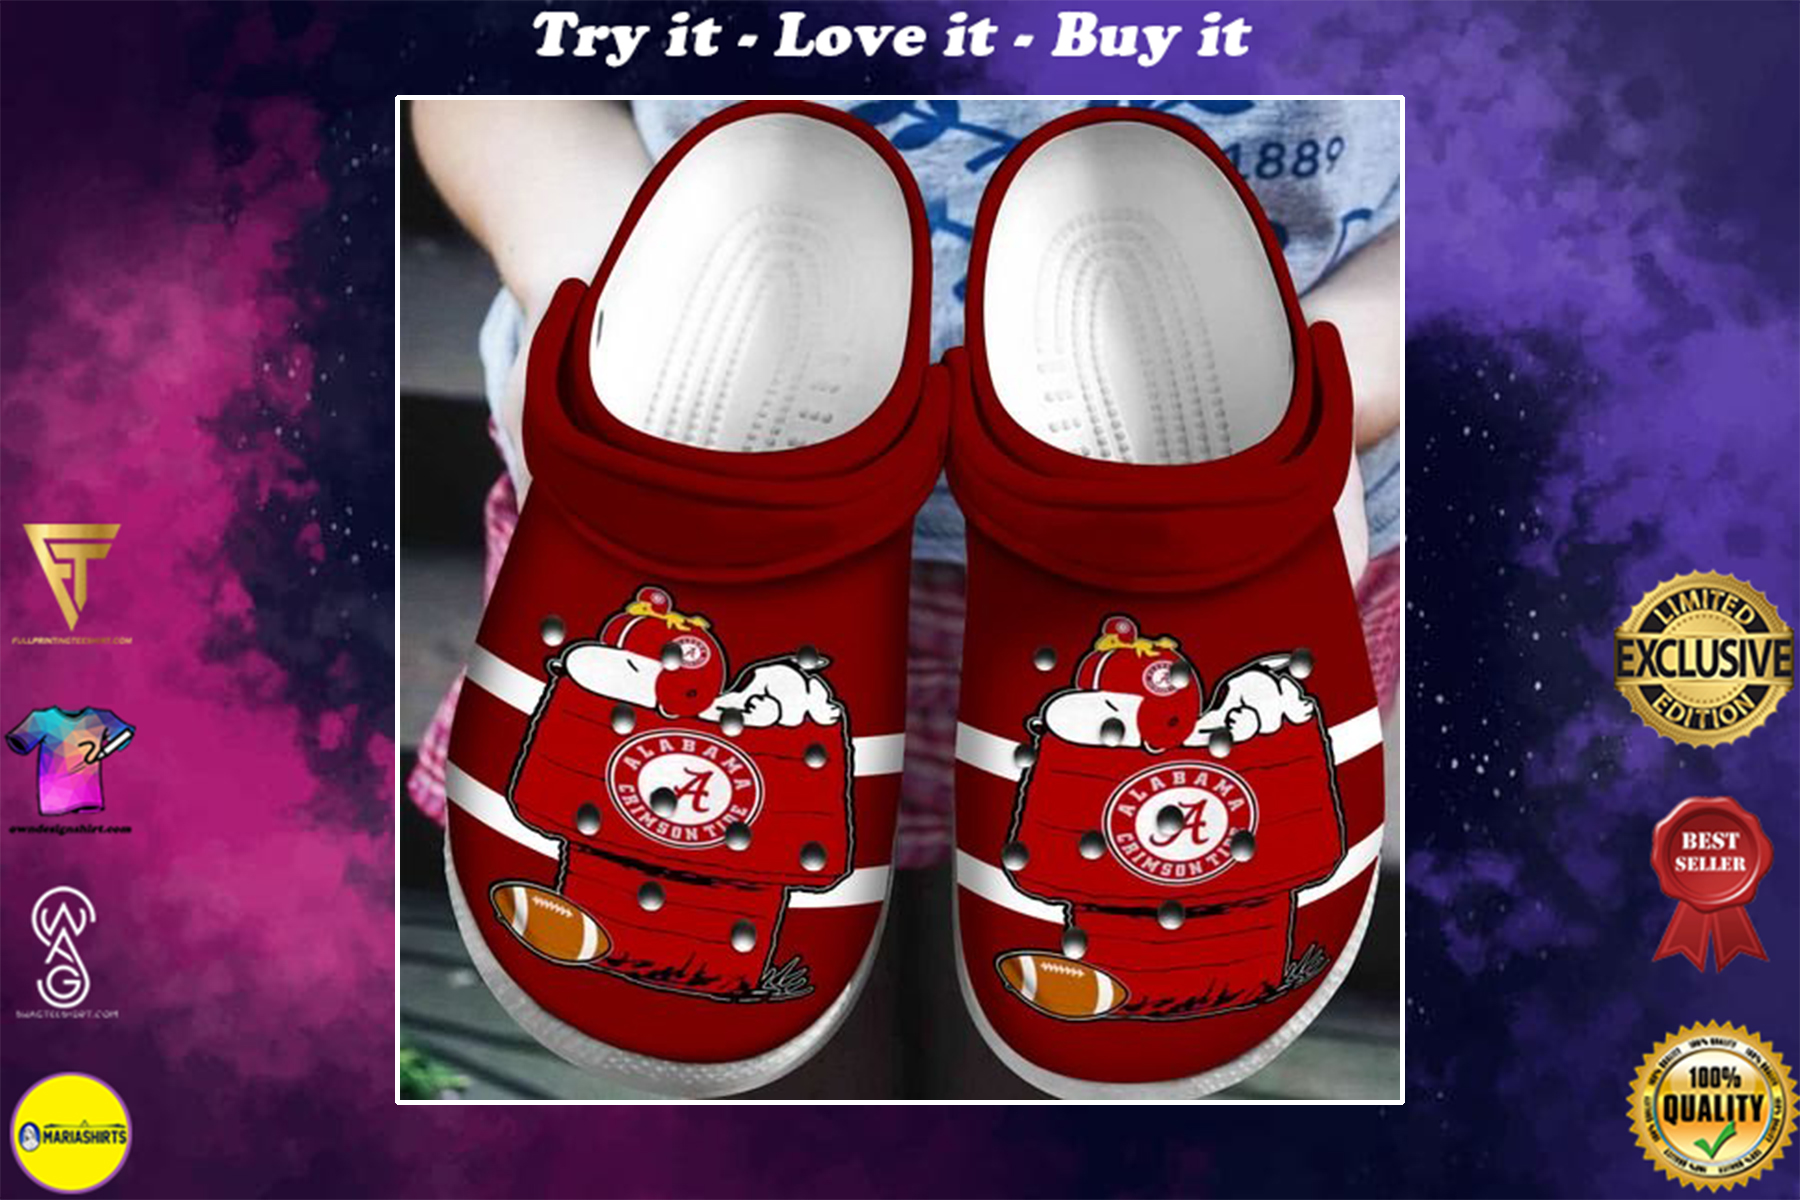 [special edition] crocs alabama crimson tide snoopy and charlie brown clog - maria